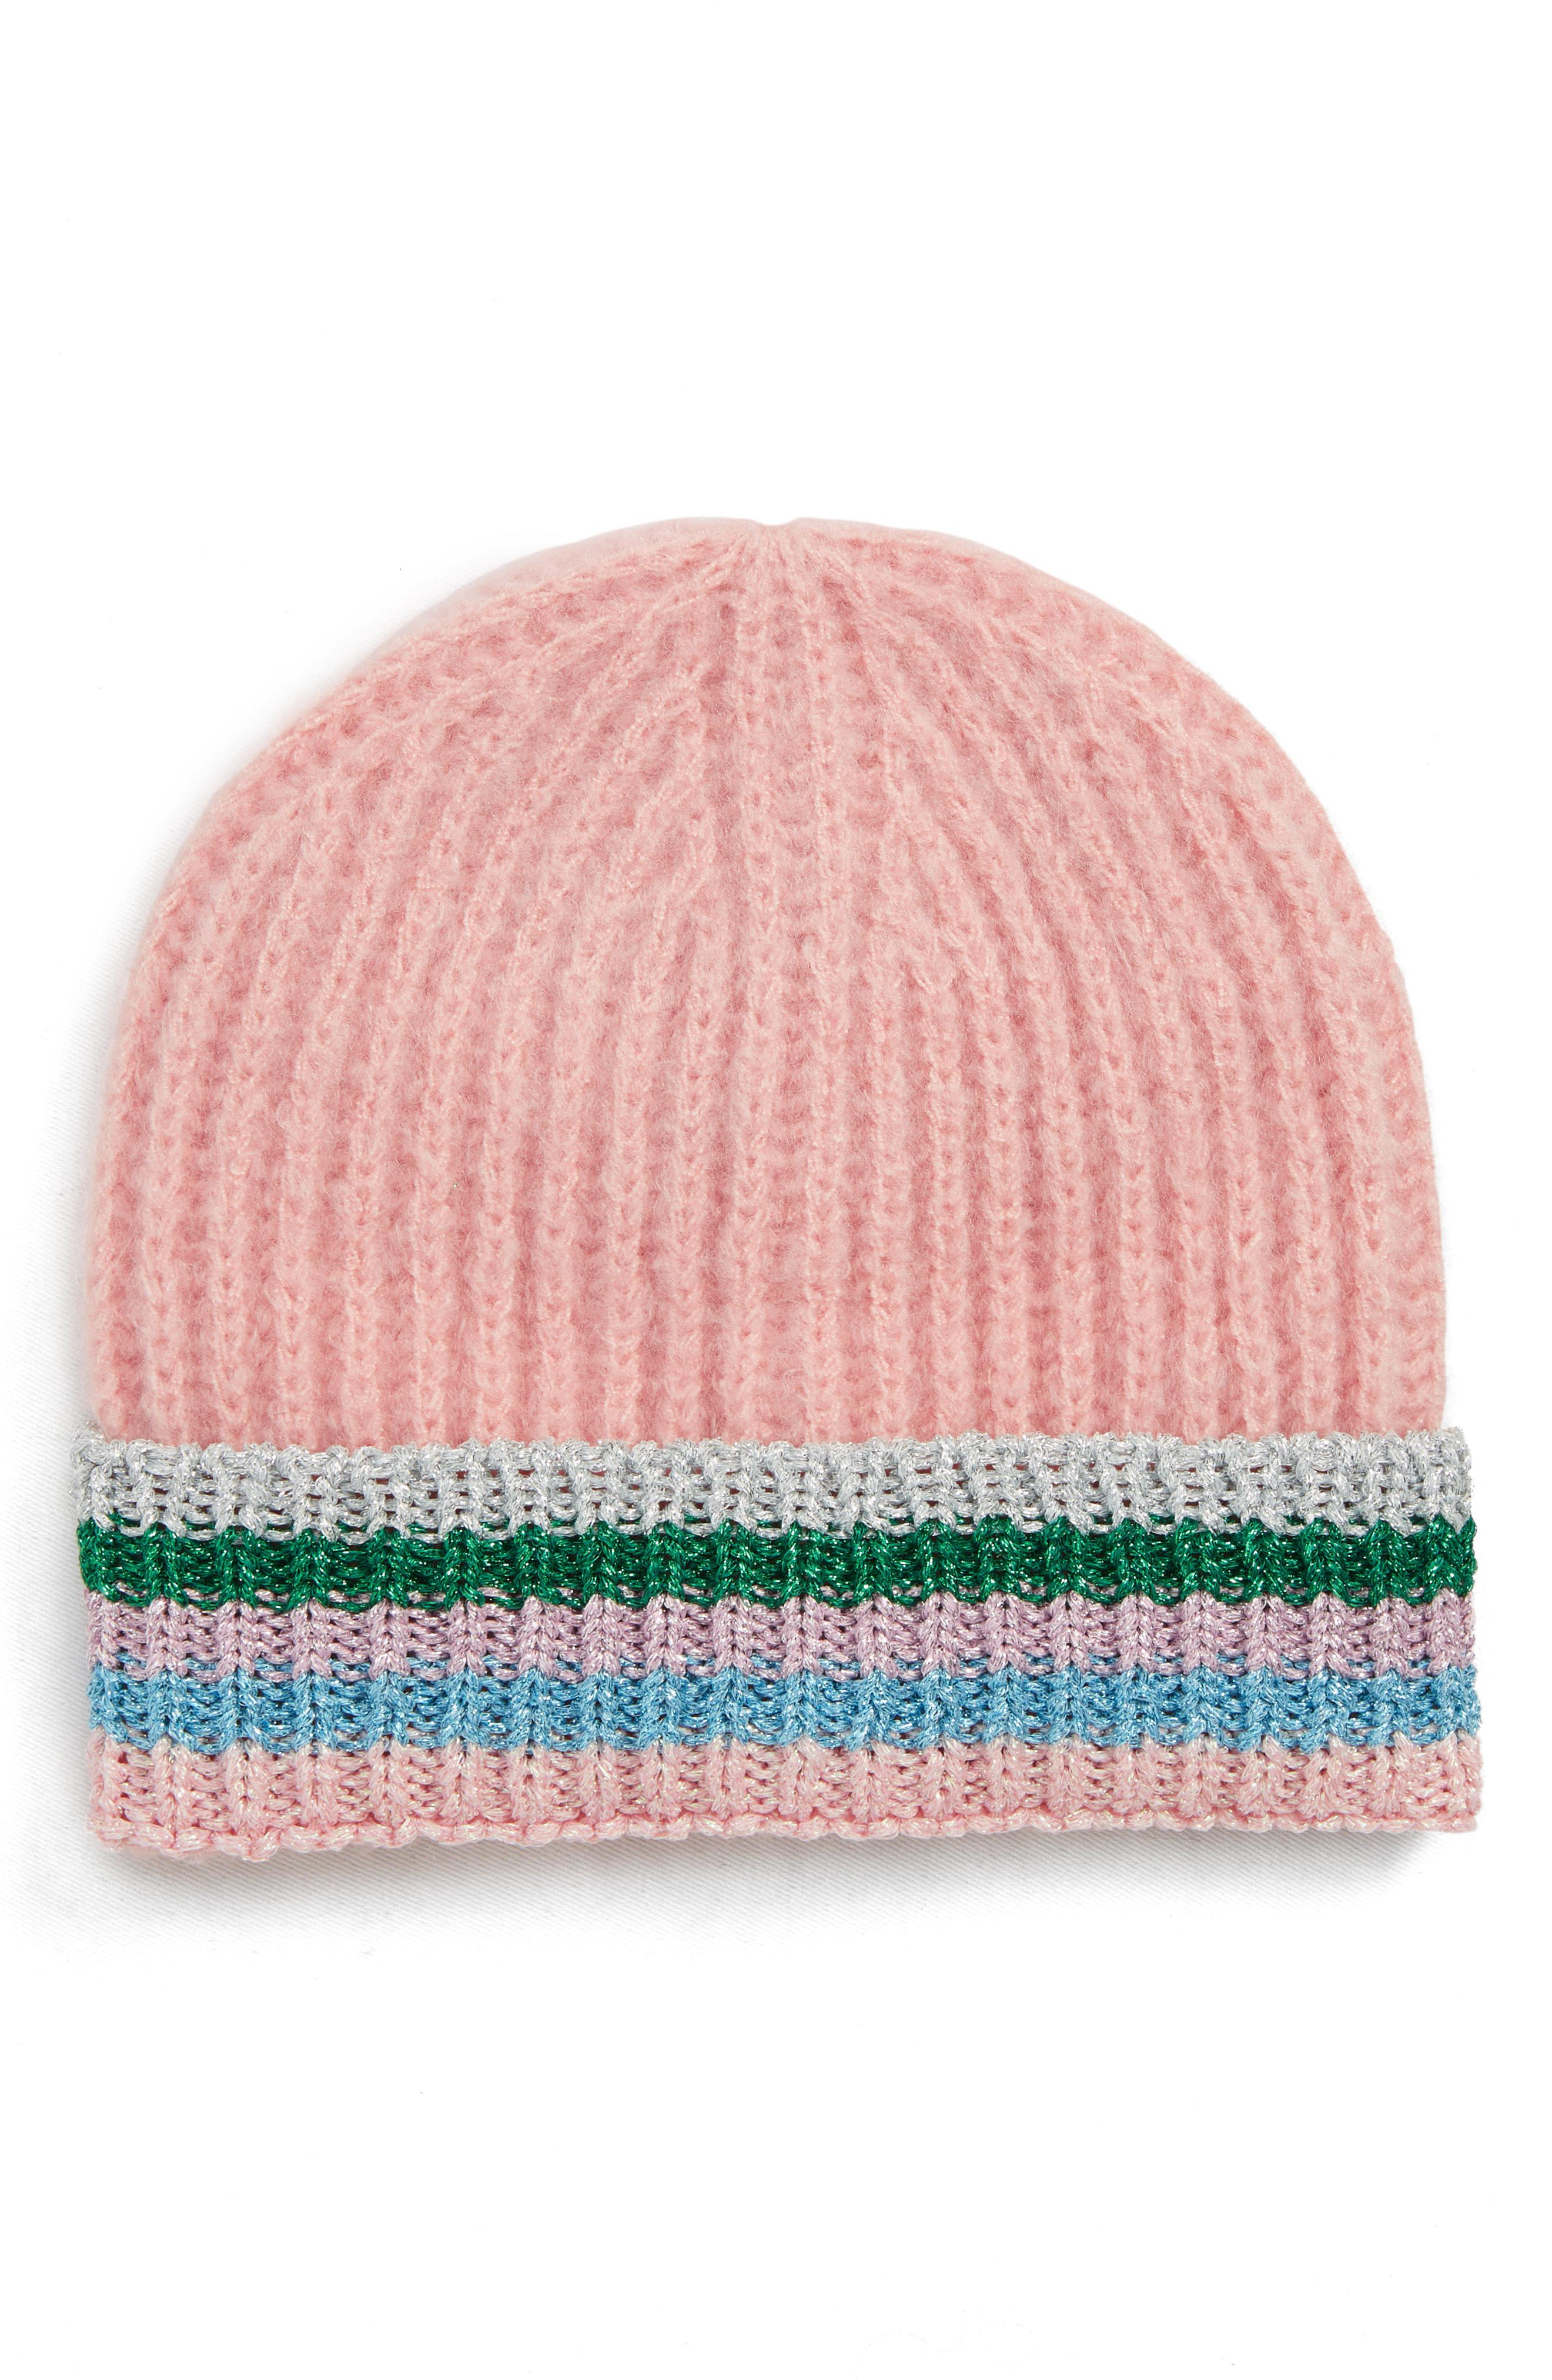 ea5f45769cca3 Gallery. Previously sold at  Nordstrom · Women s Cloche Hats Women s Beanies  ...